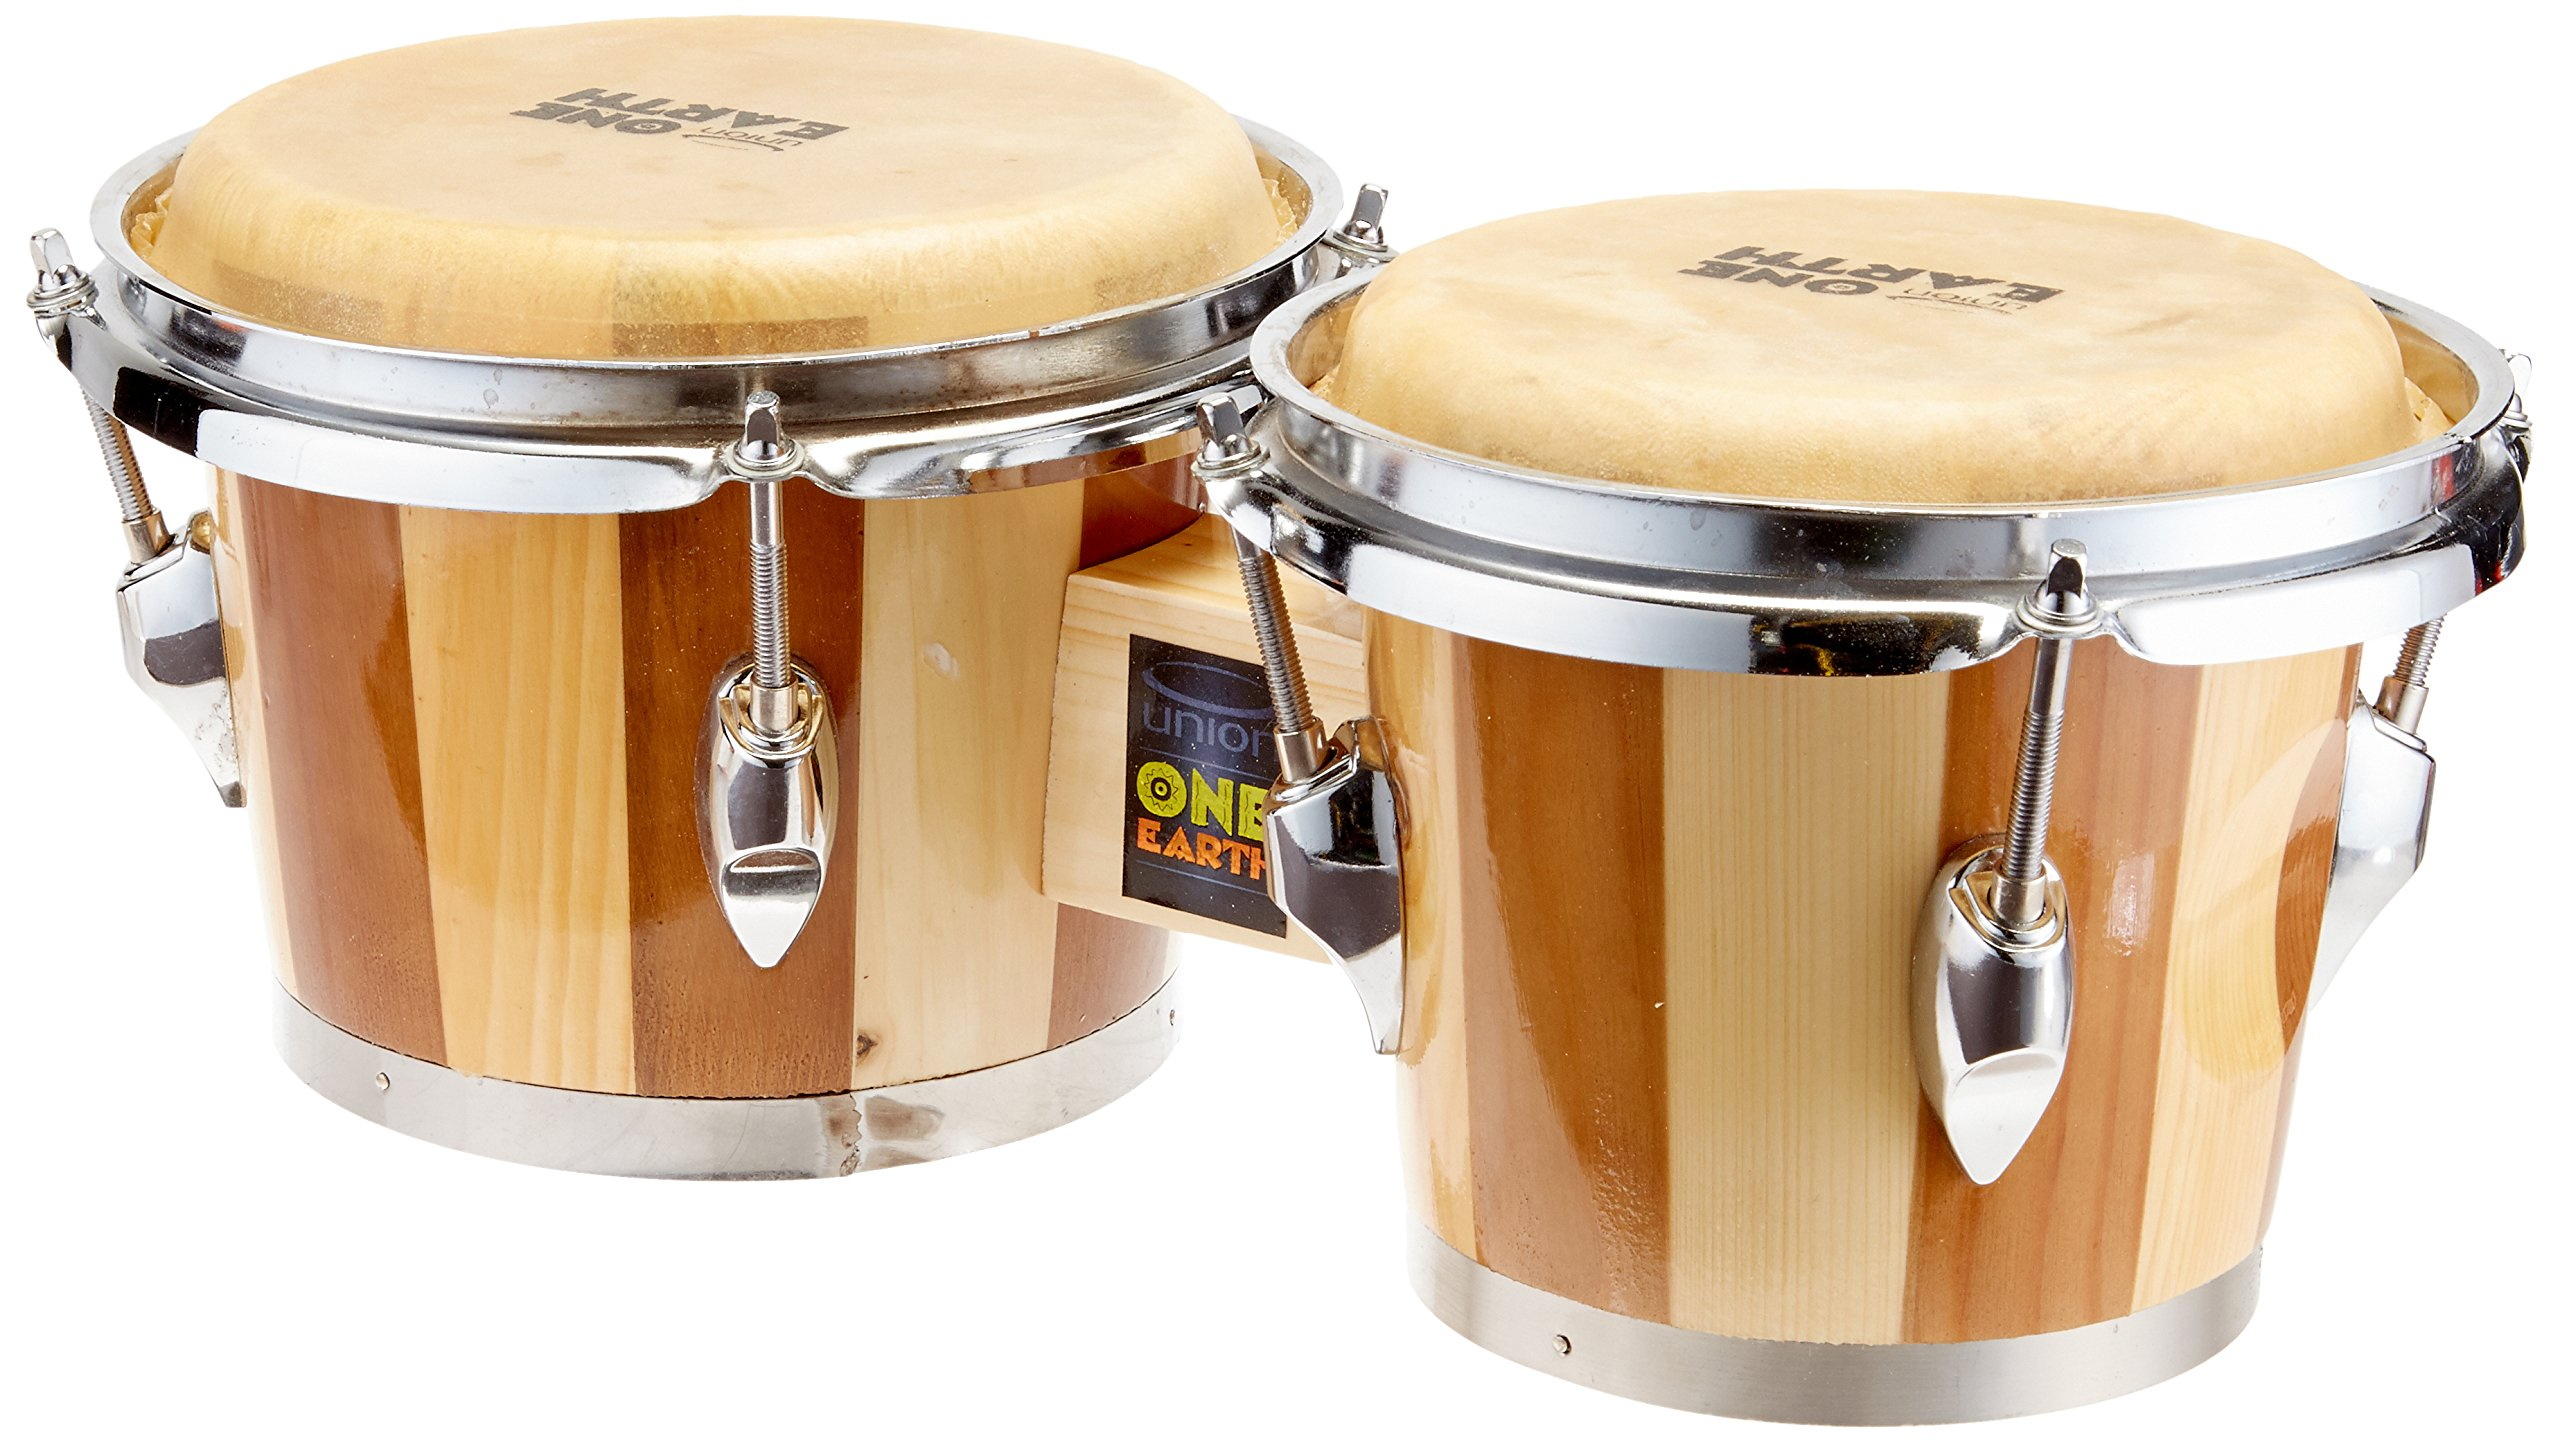 Union One Earth UB1 Bongo Drums by Union